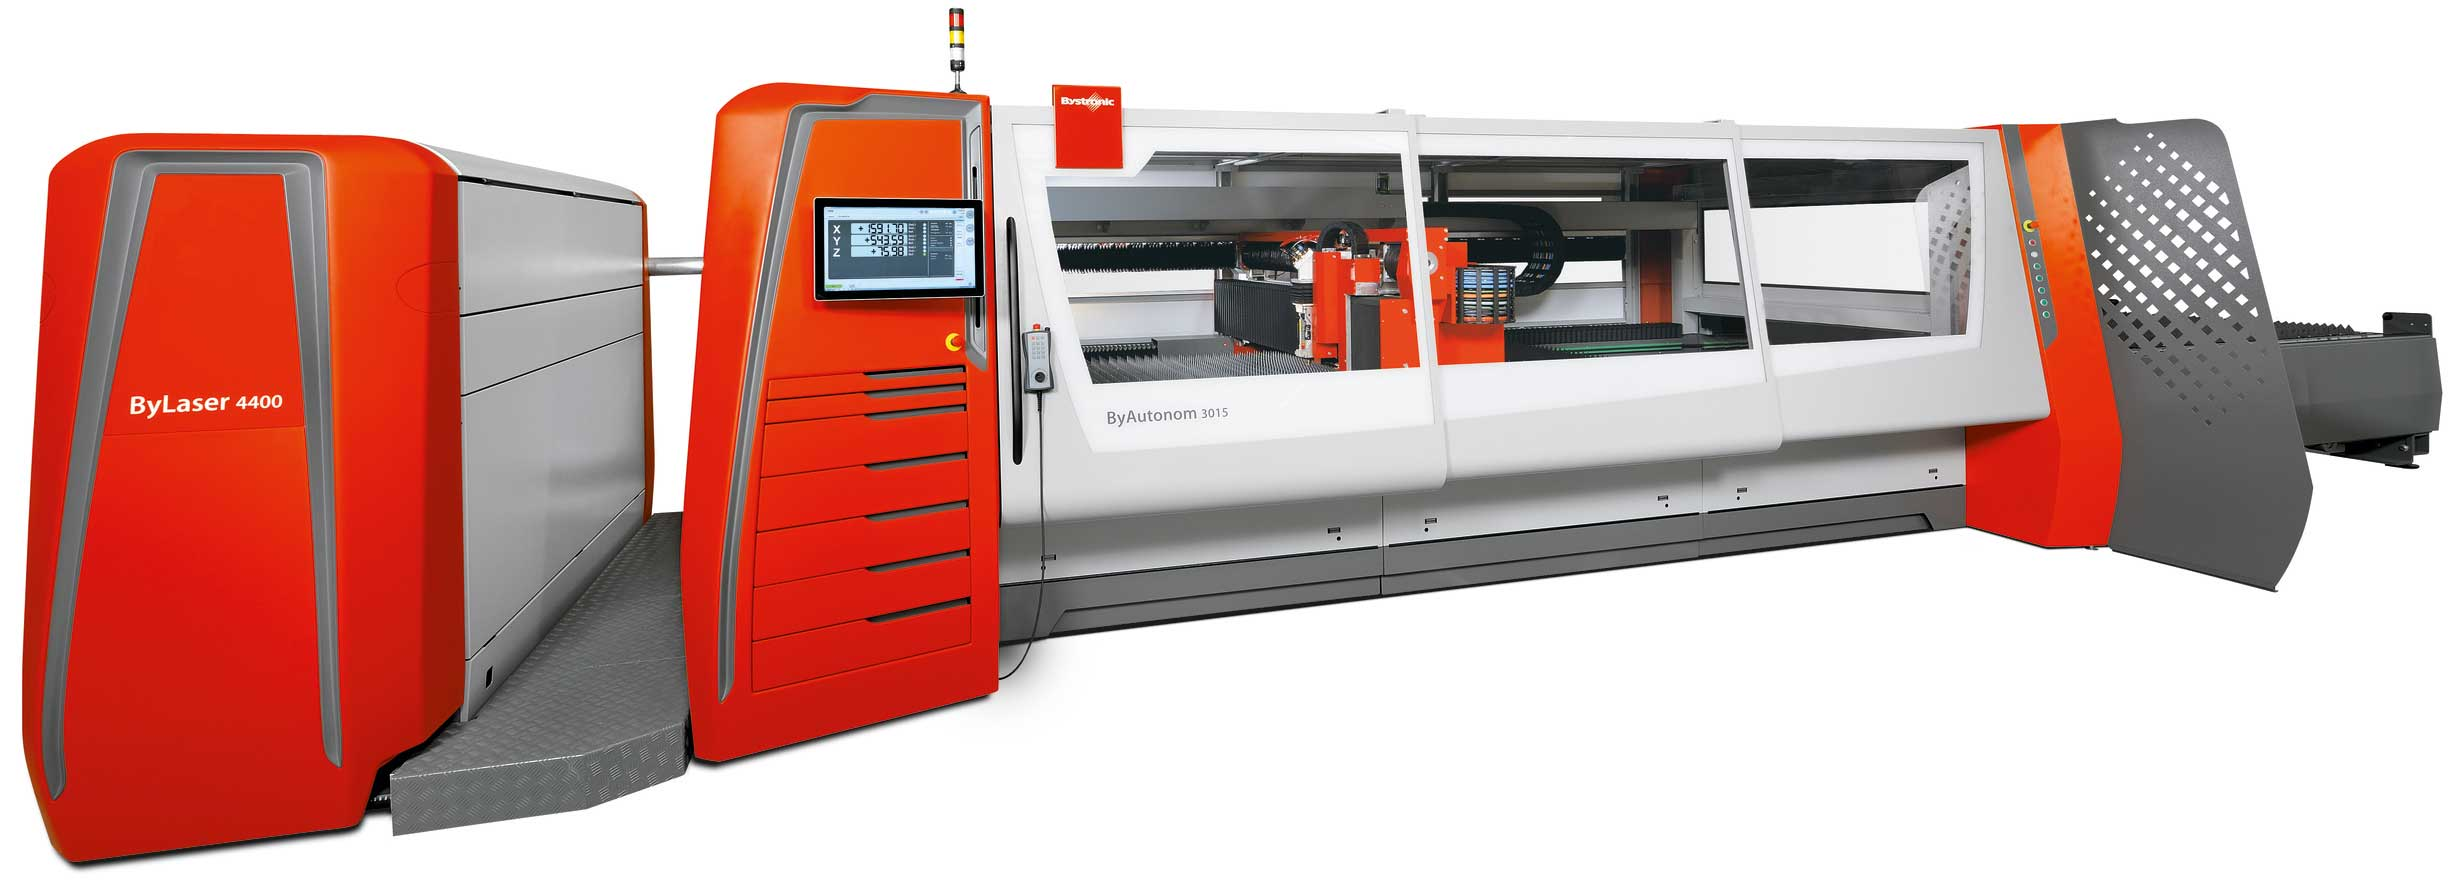 Bystronic Introduces New Laser Cutting System